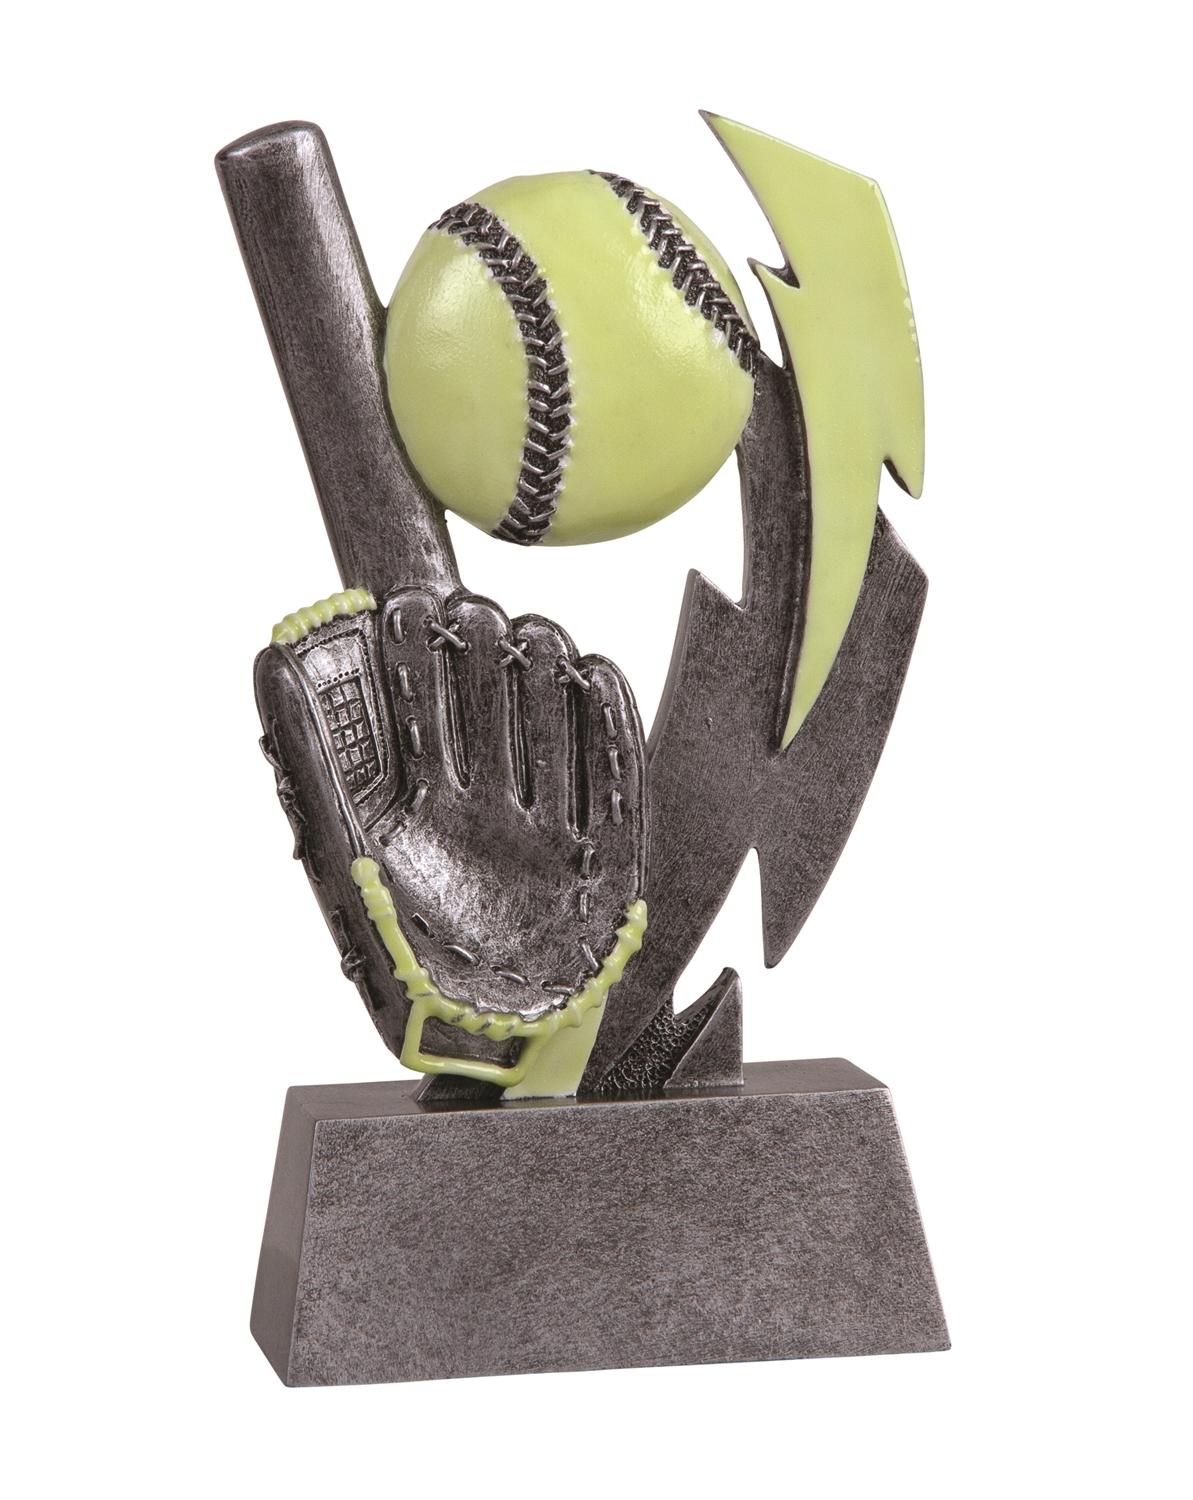 Glow in the Dark Softball Trophy